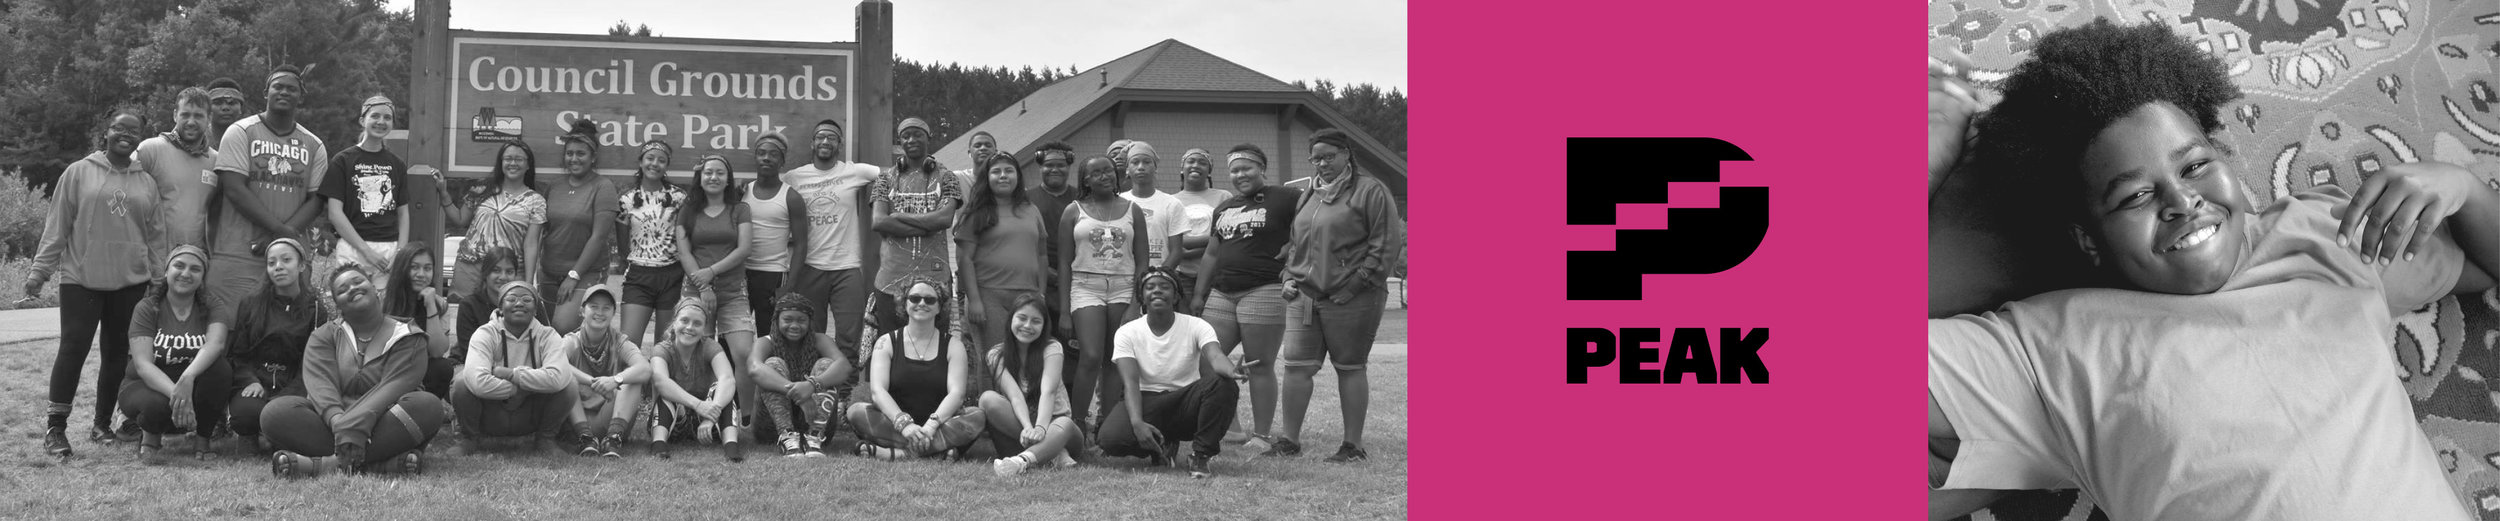 PEAK-Initiative-Milwaukee-WI-Youth-Organization-Camp-Kid-Teen-Lake-Valley-Summer-Contact0Info-Phone-Email